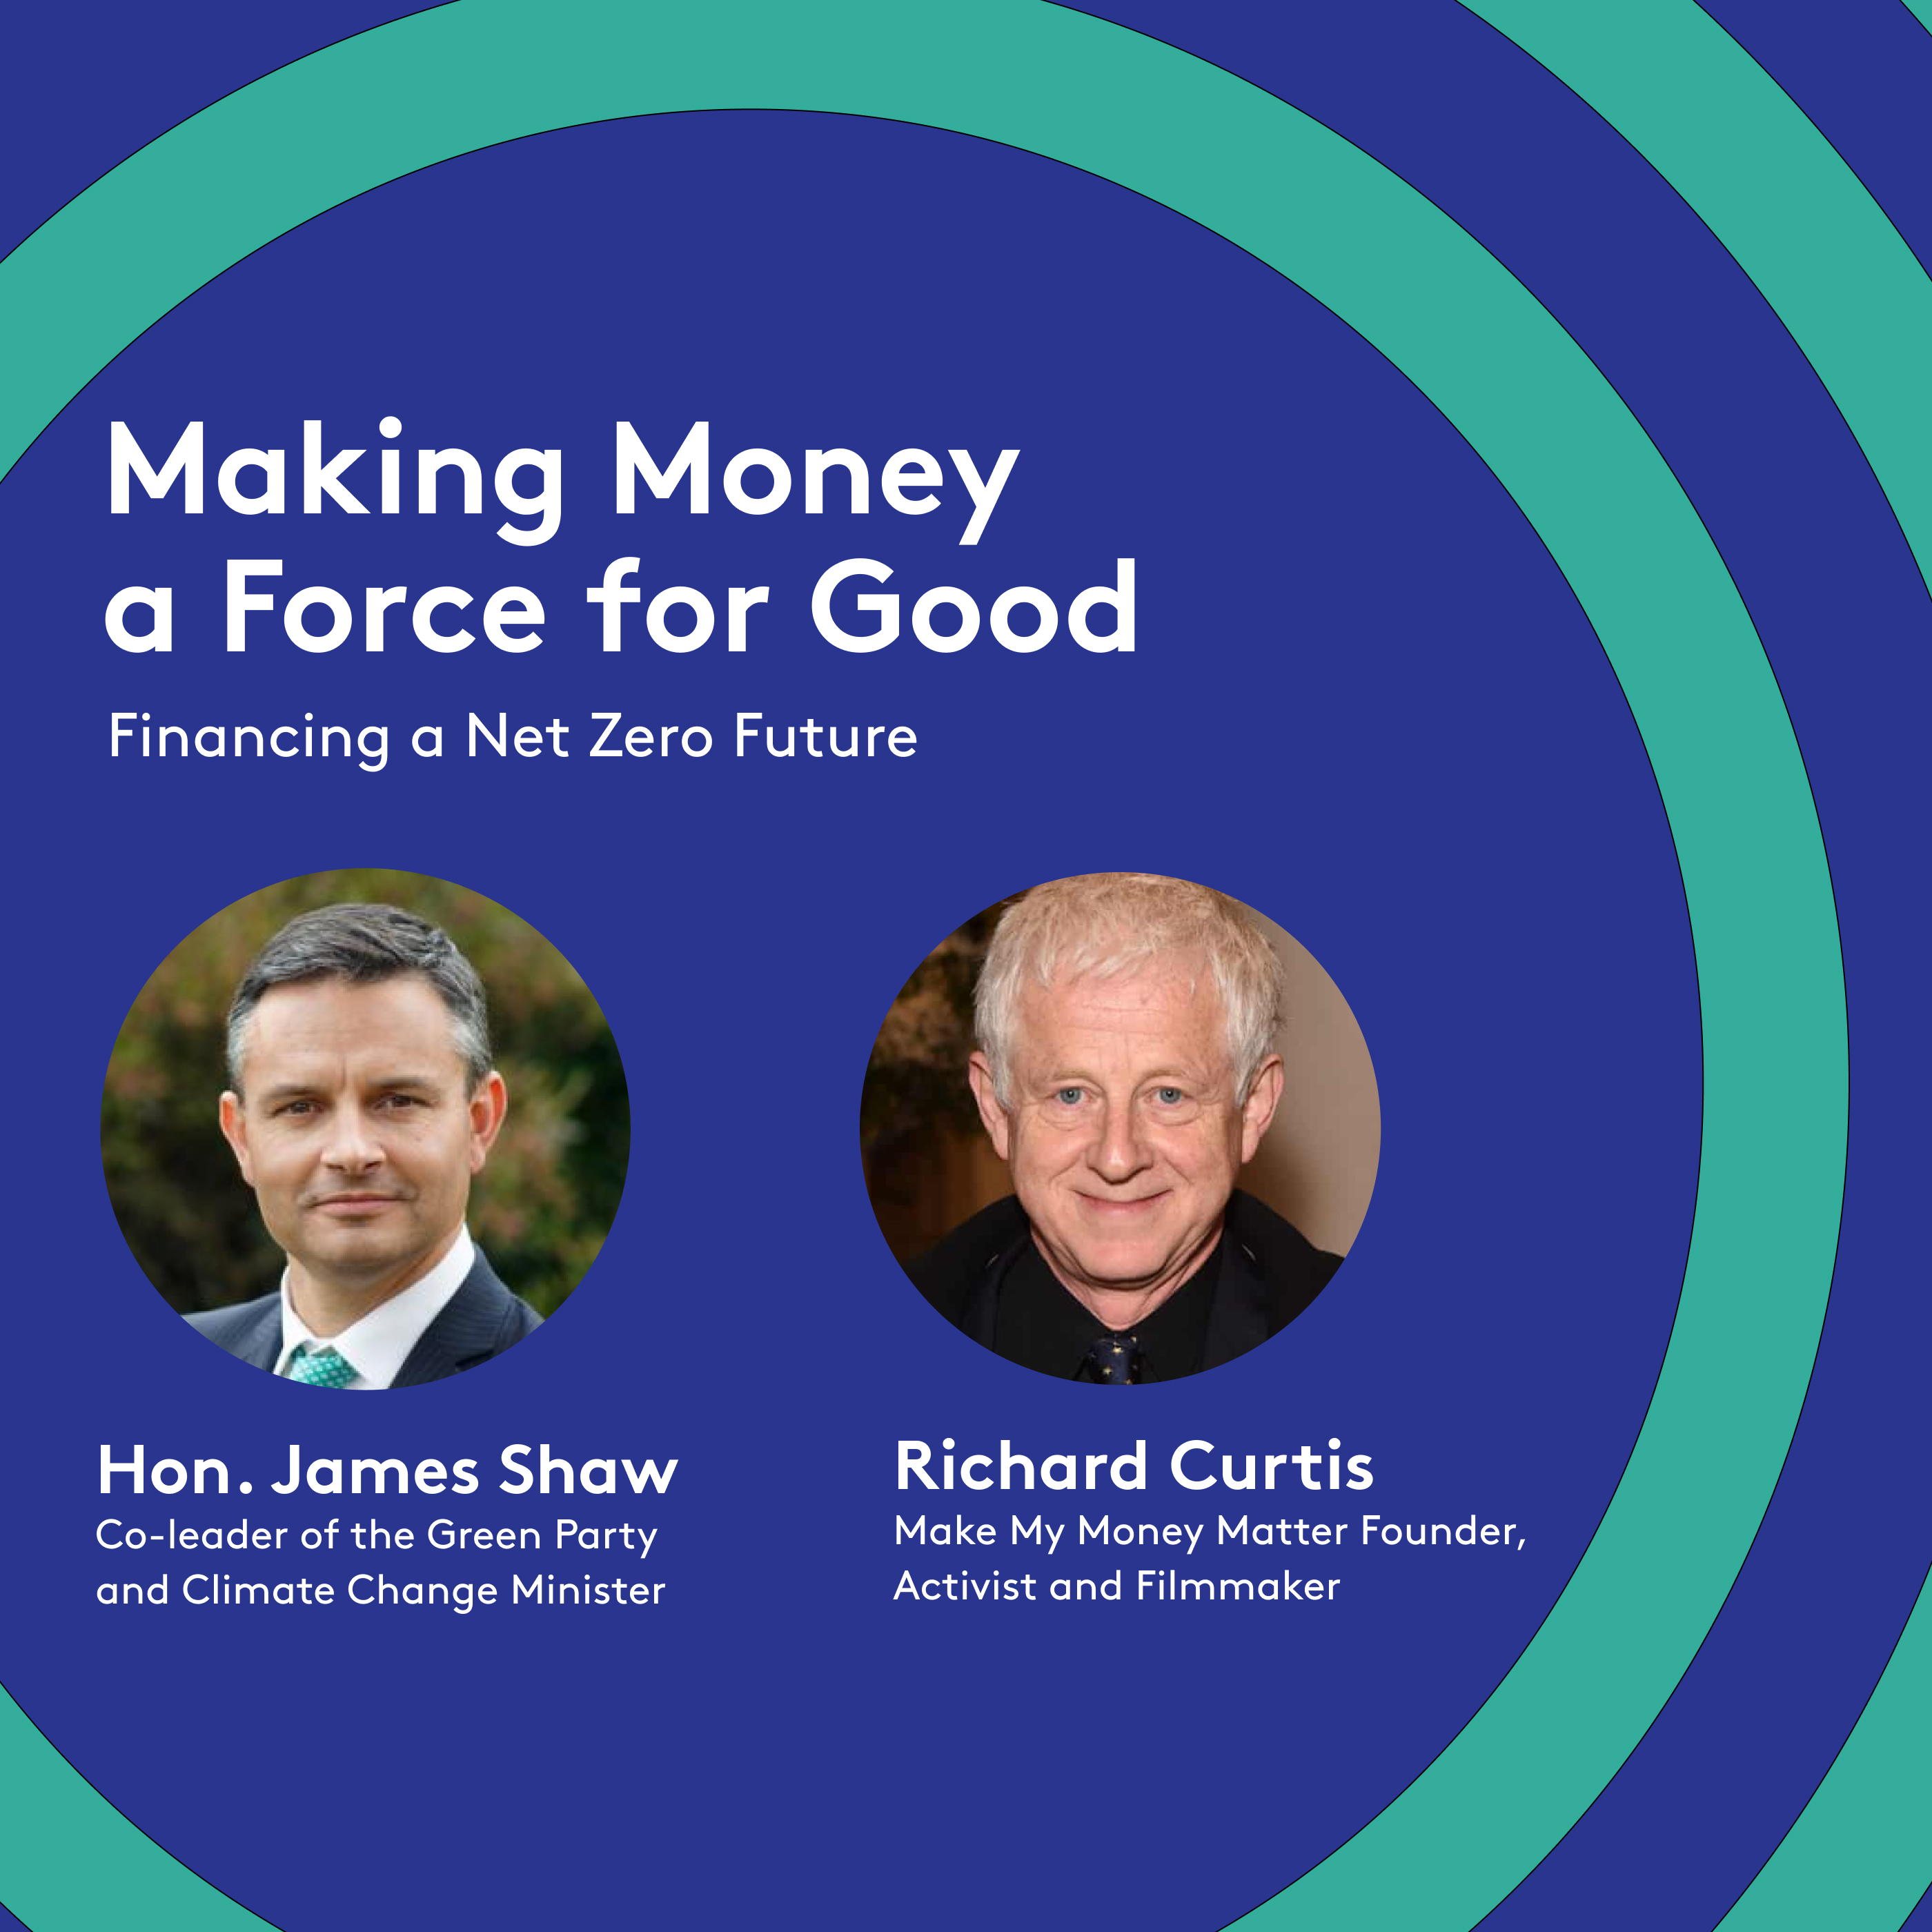 The financing of a net zero future with Hon. James Shaw and Richard Curtis